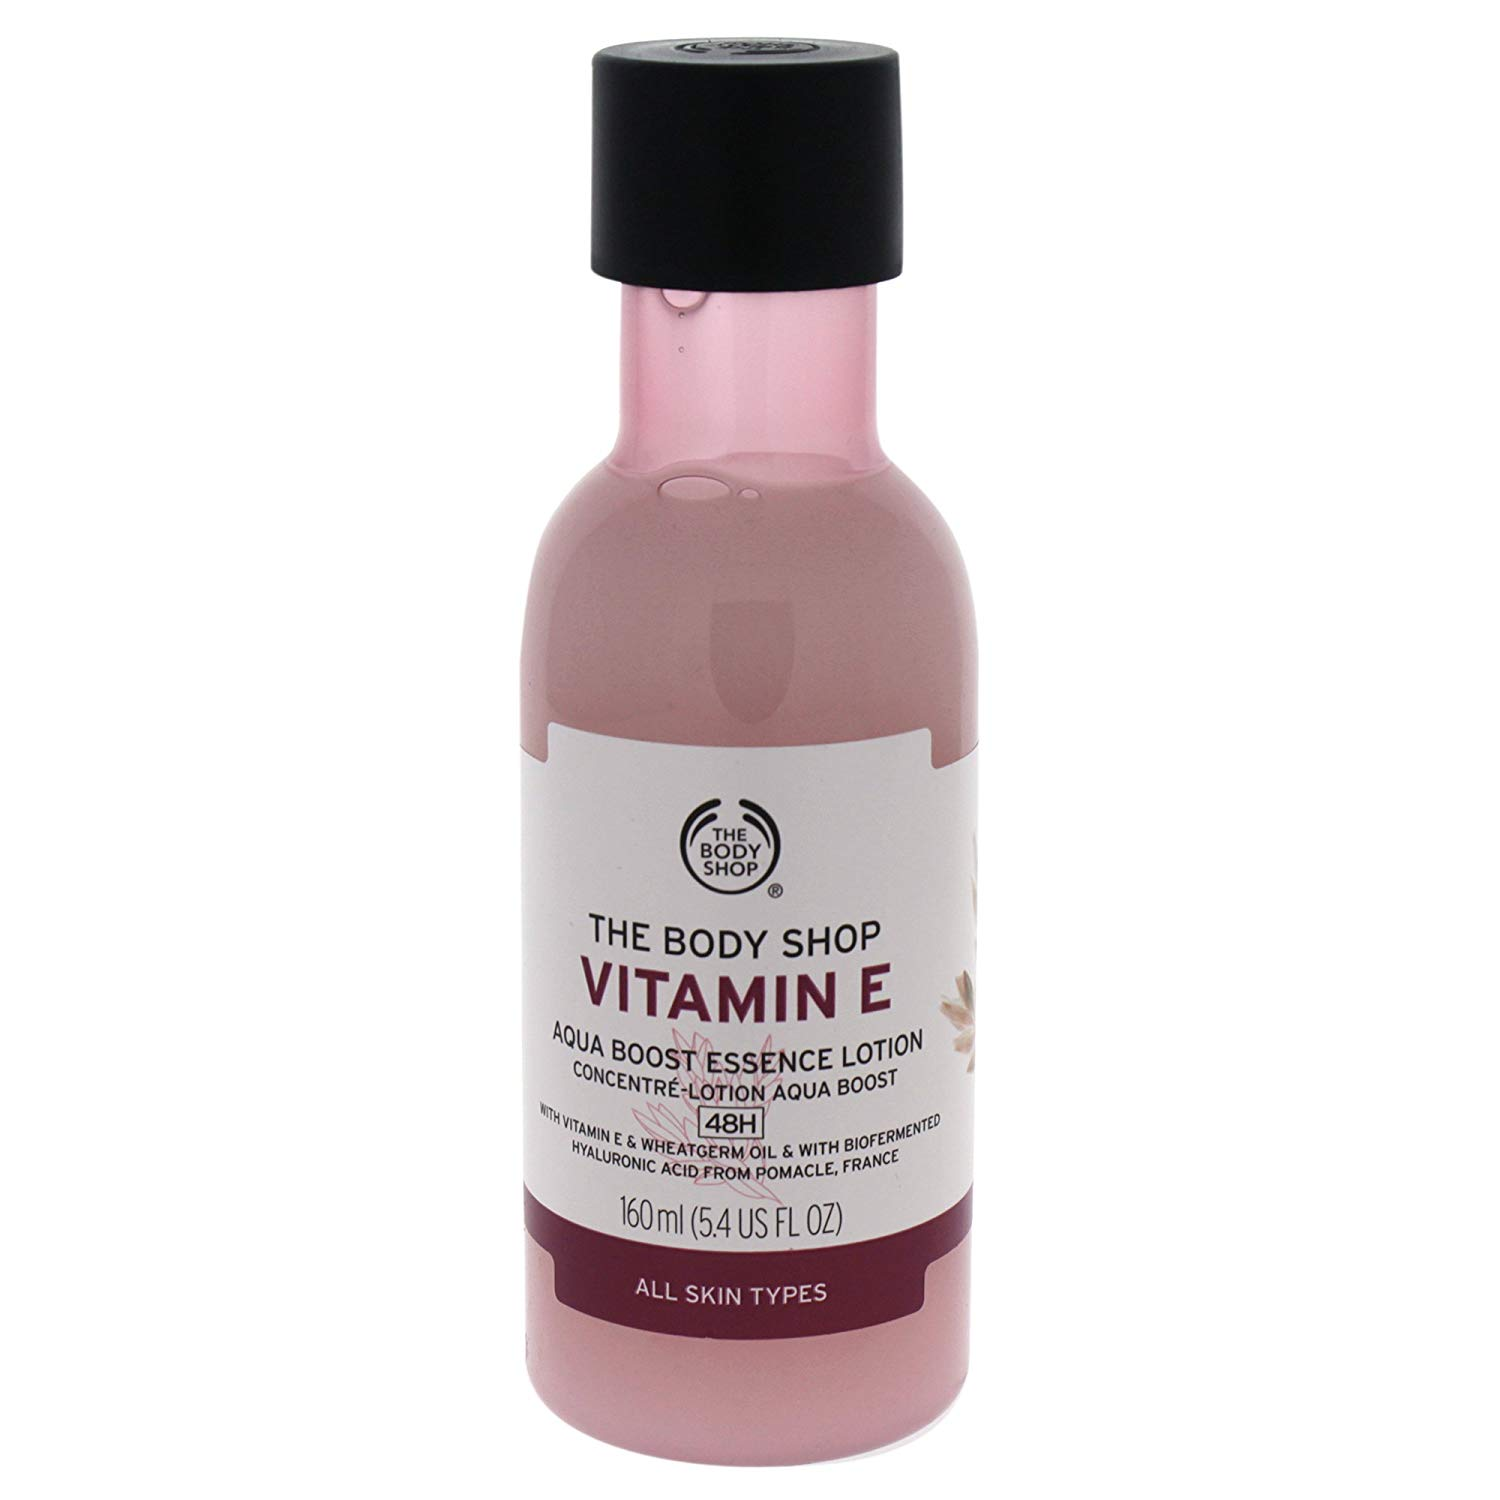 The Body Shop Vitamin E Aqua Boost Essence Lotion